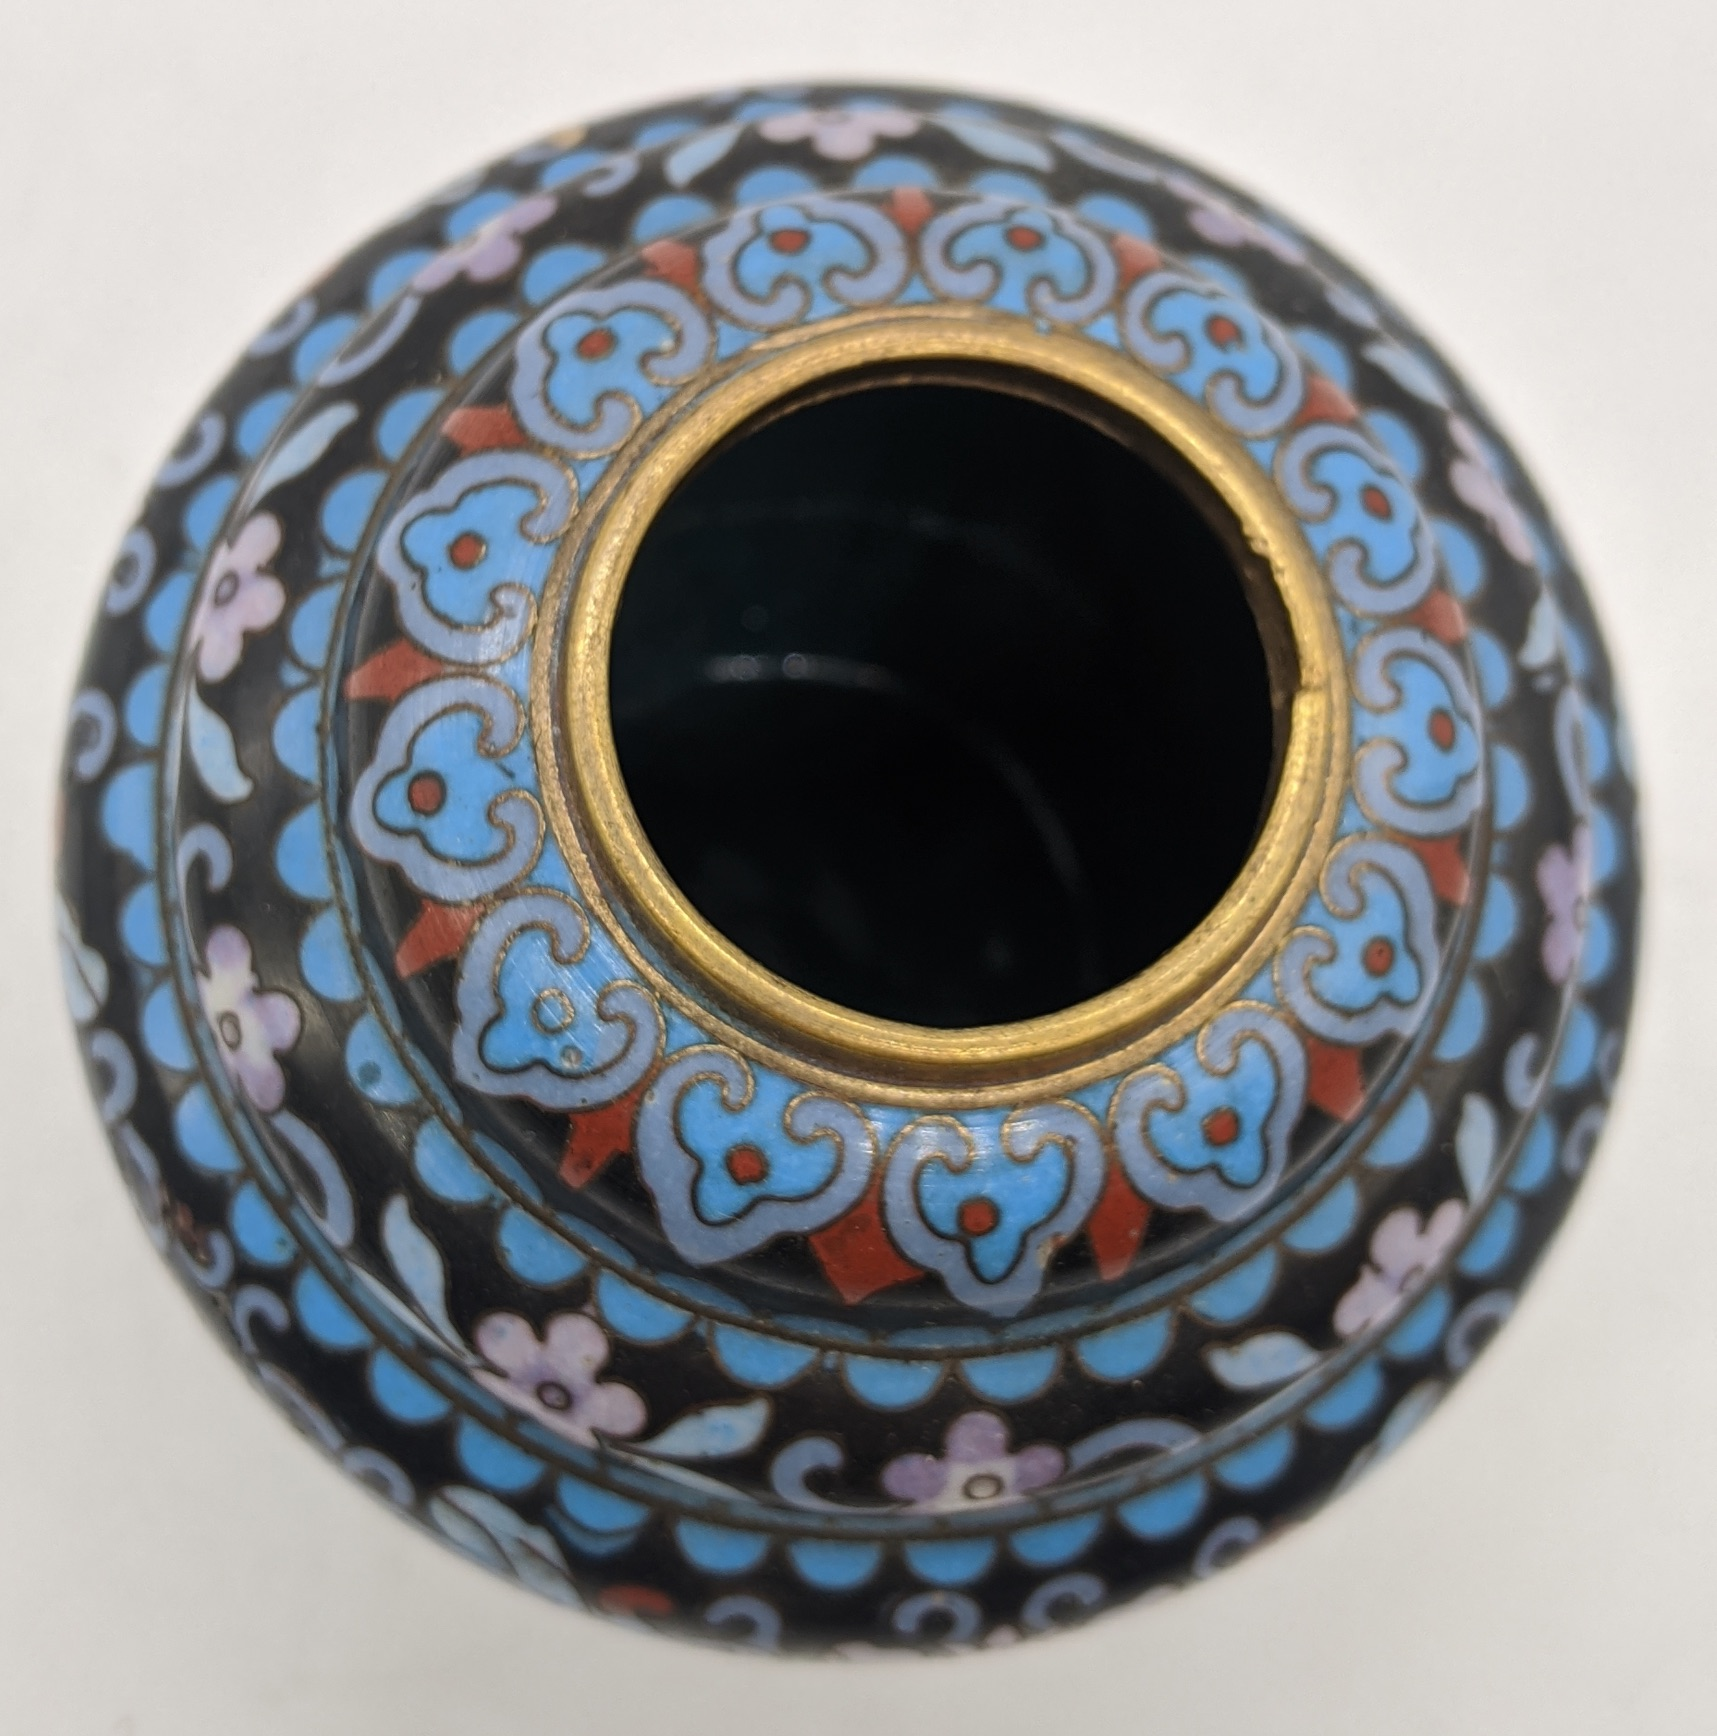 A late 19th/early 20th century Chinese cloisonne enamel brush pot, H.8.5cm - Image 3 of 3